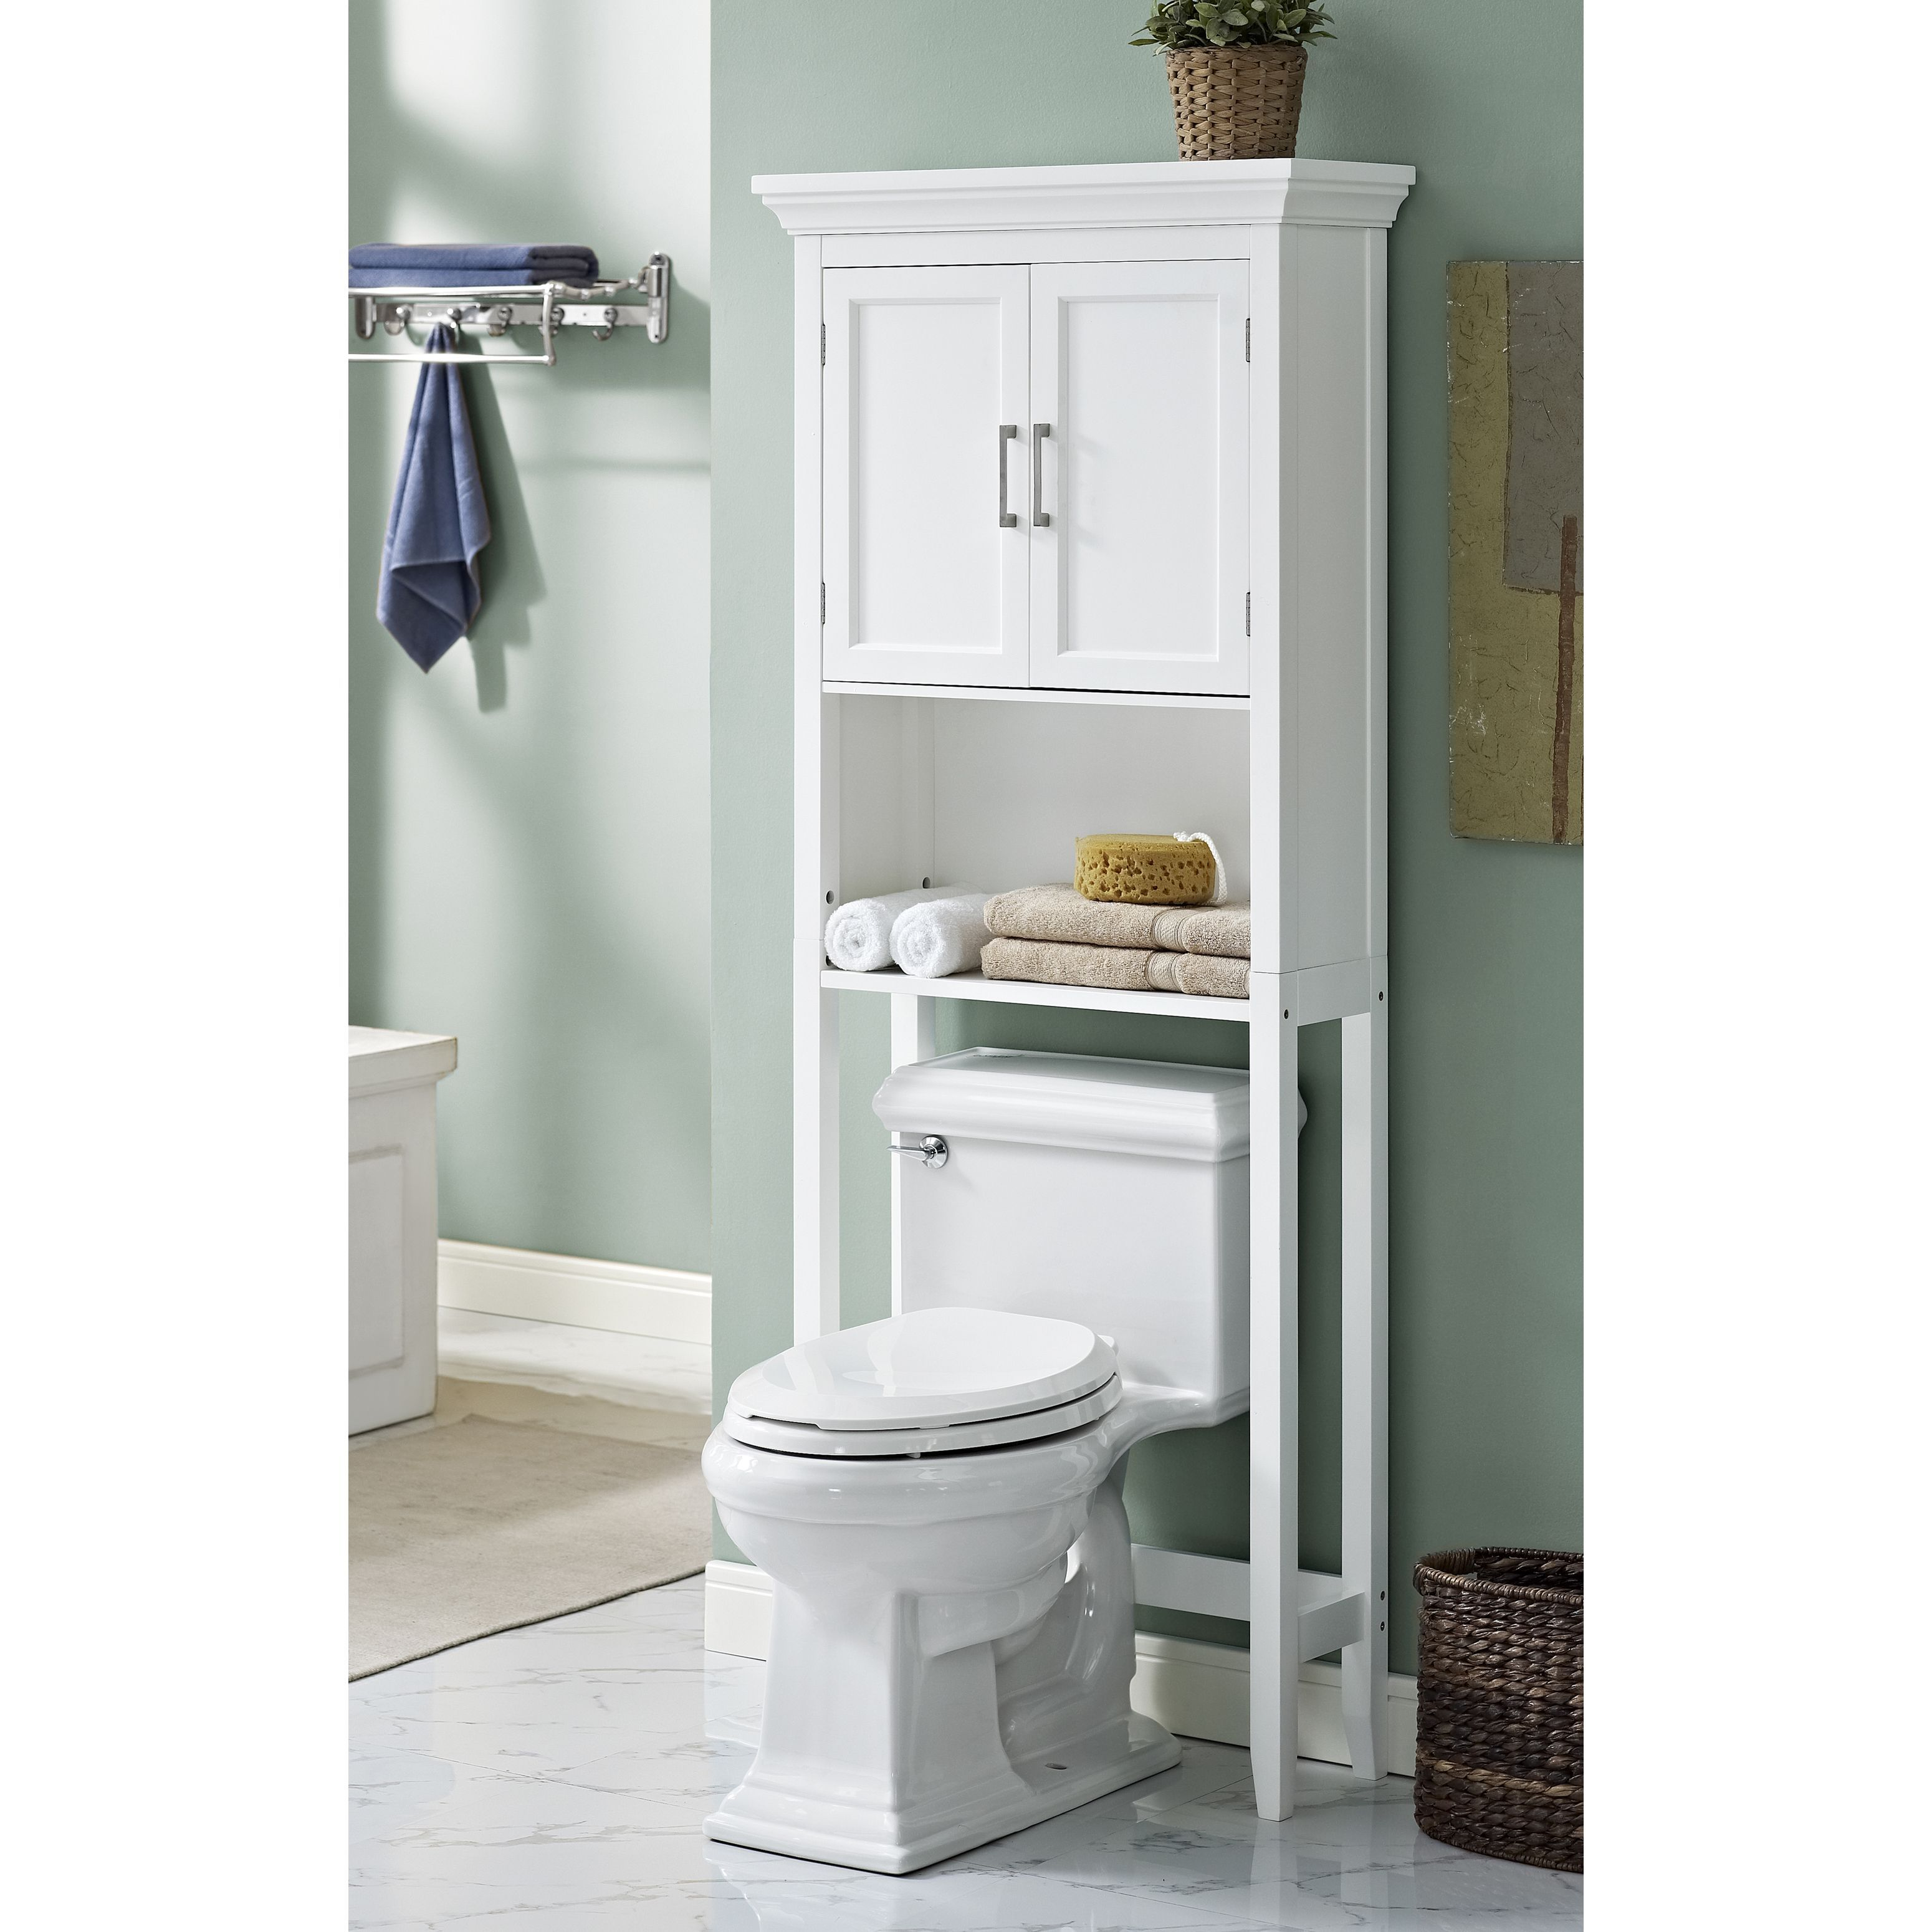 Ordinaire Wyndenhall Hayes White Bathroom Space Saver Cabinet (White)